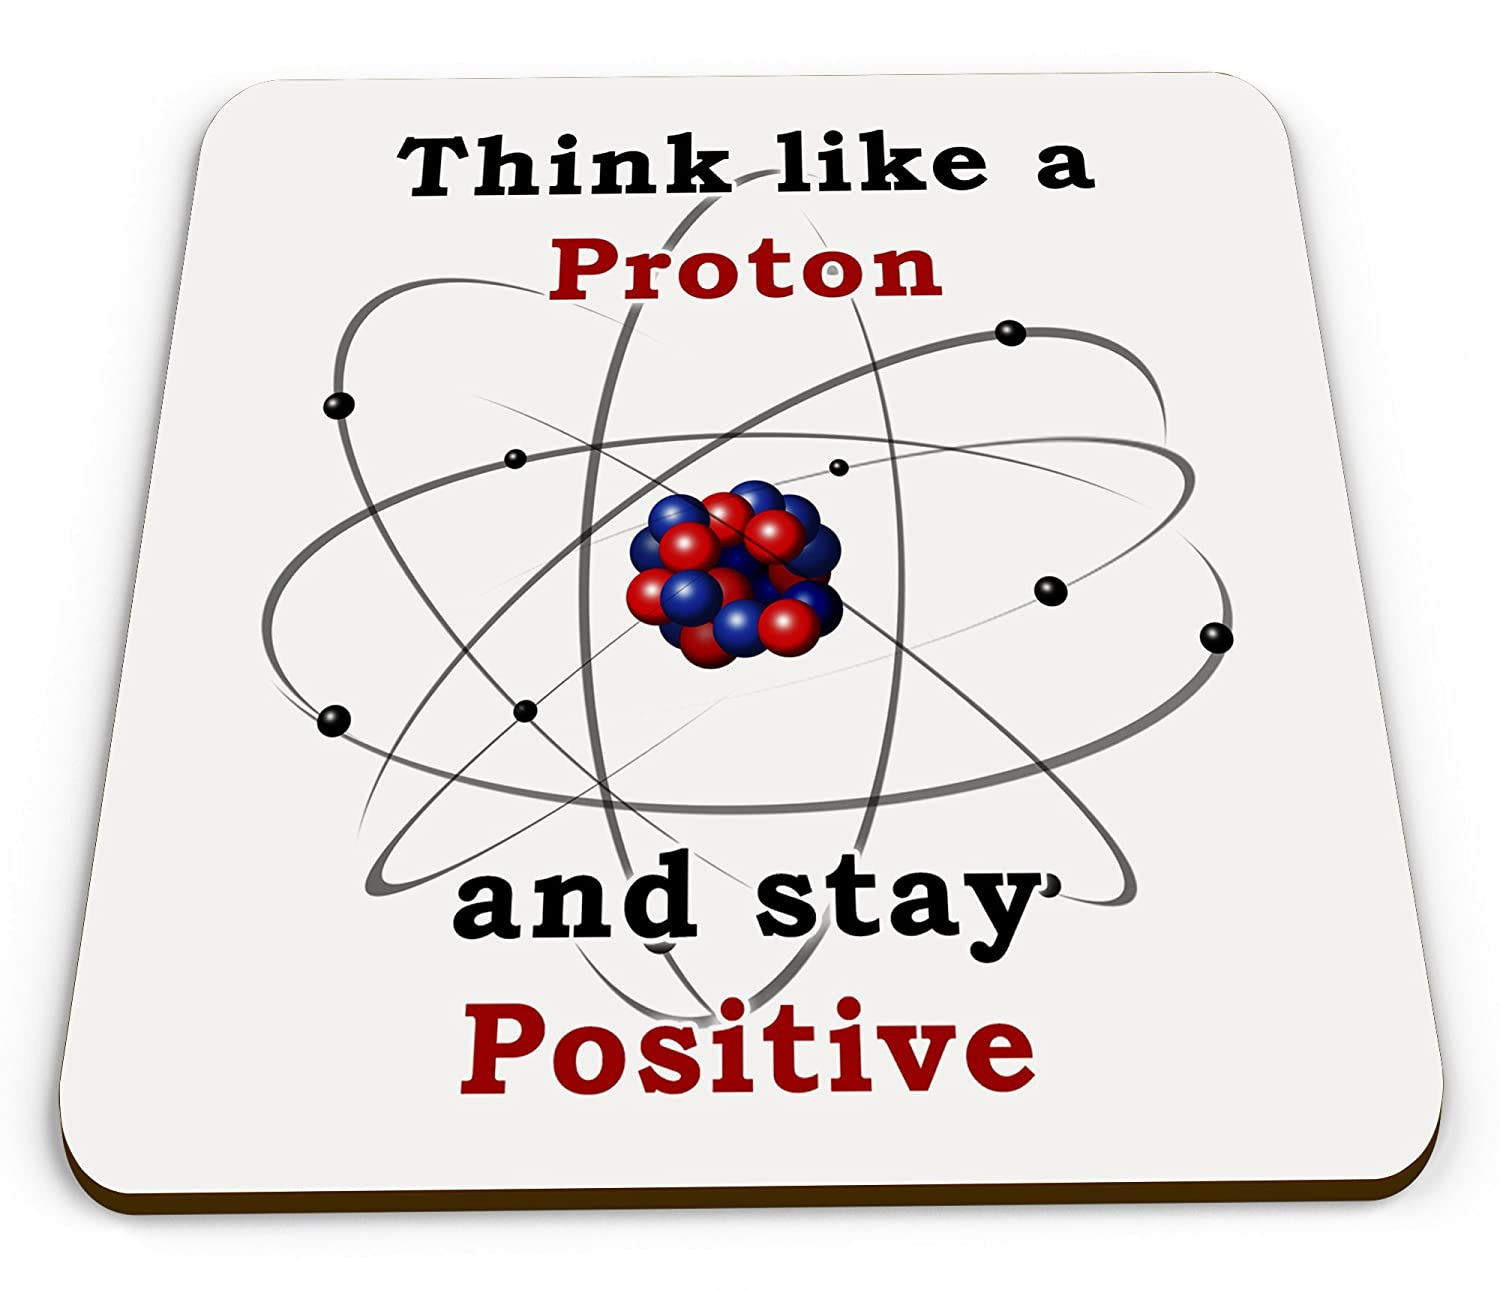 think like a proton and stay positive novelty science teacher glossy mug coaster - Periodic Table Of Elements Gifts